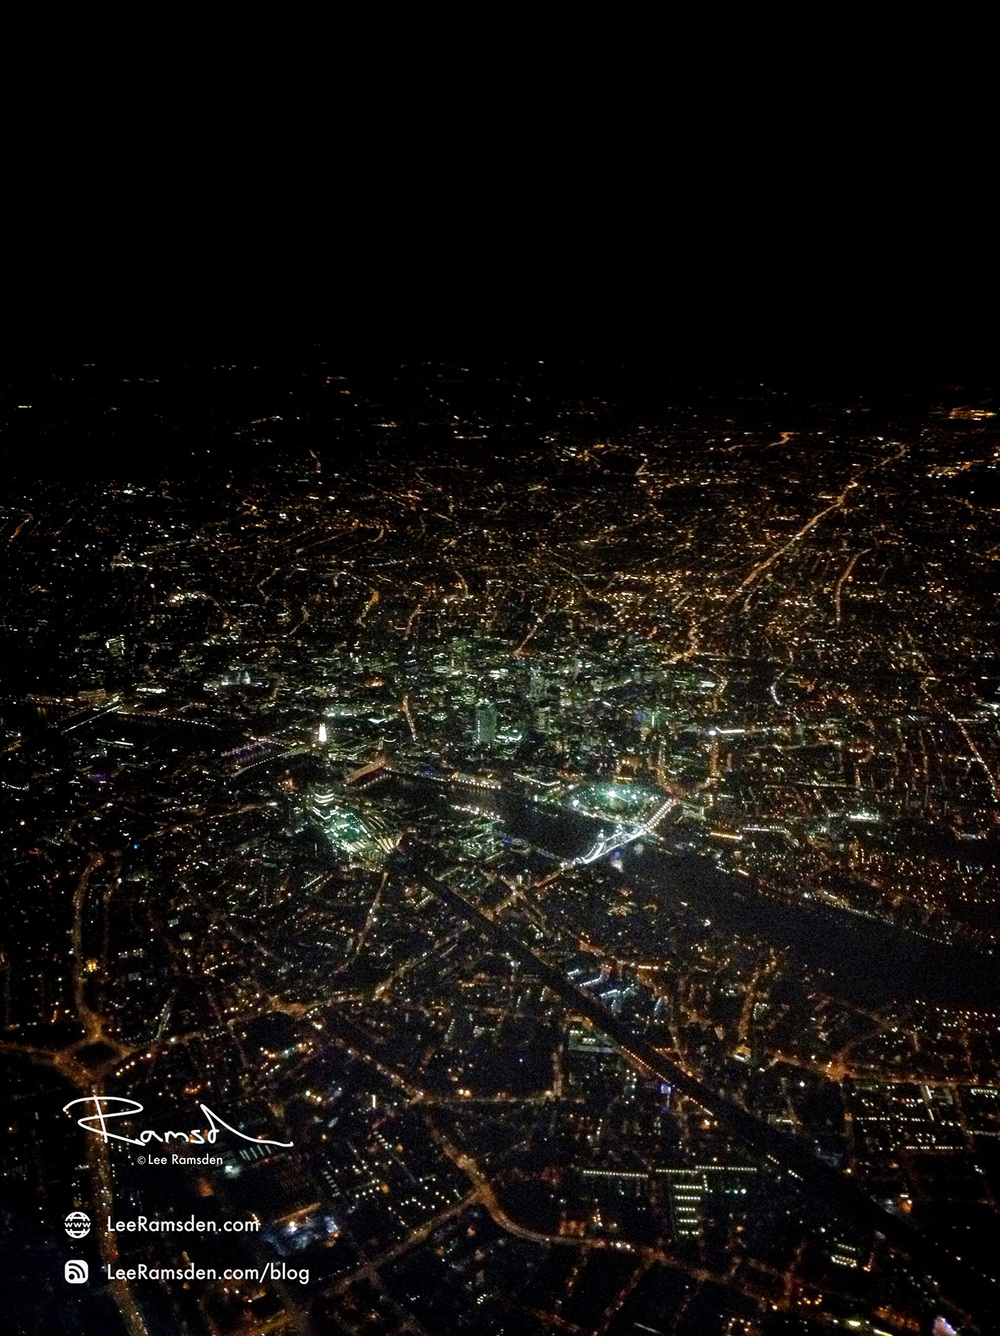 iPhone image london river thames iPhone iPhoneography nightscape from a plane lee ramsden